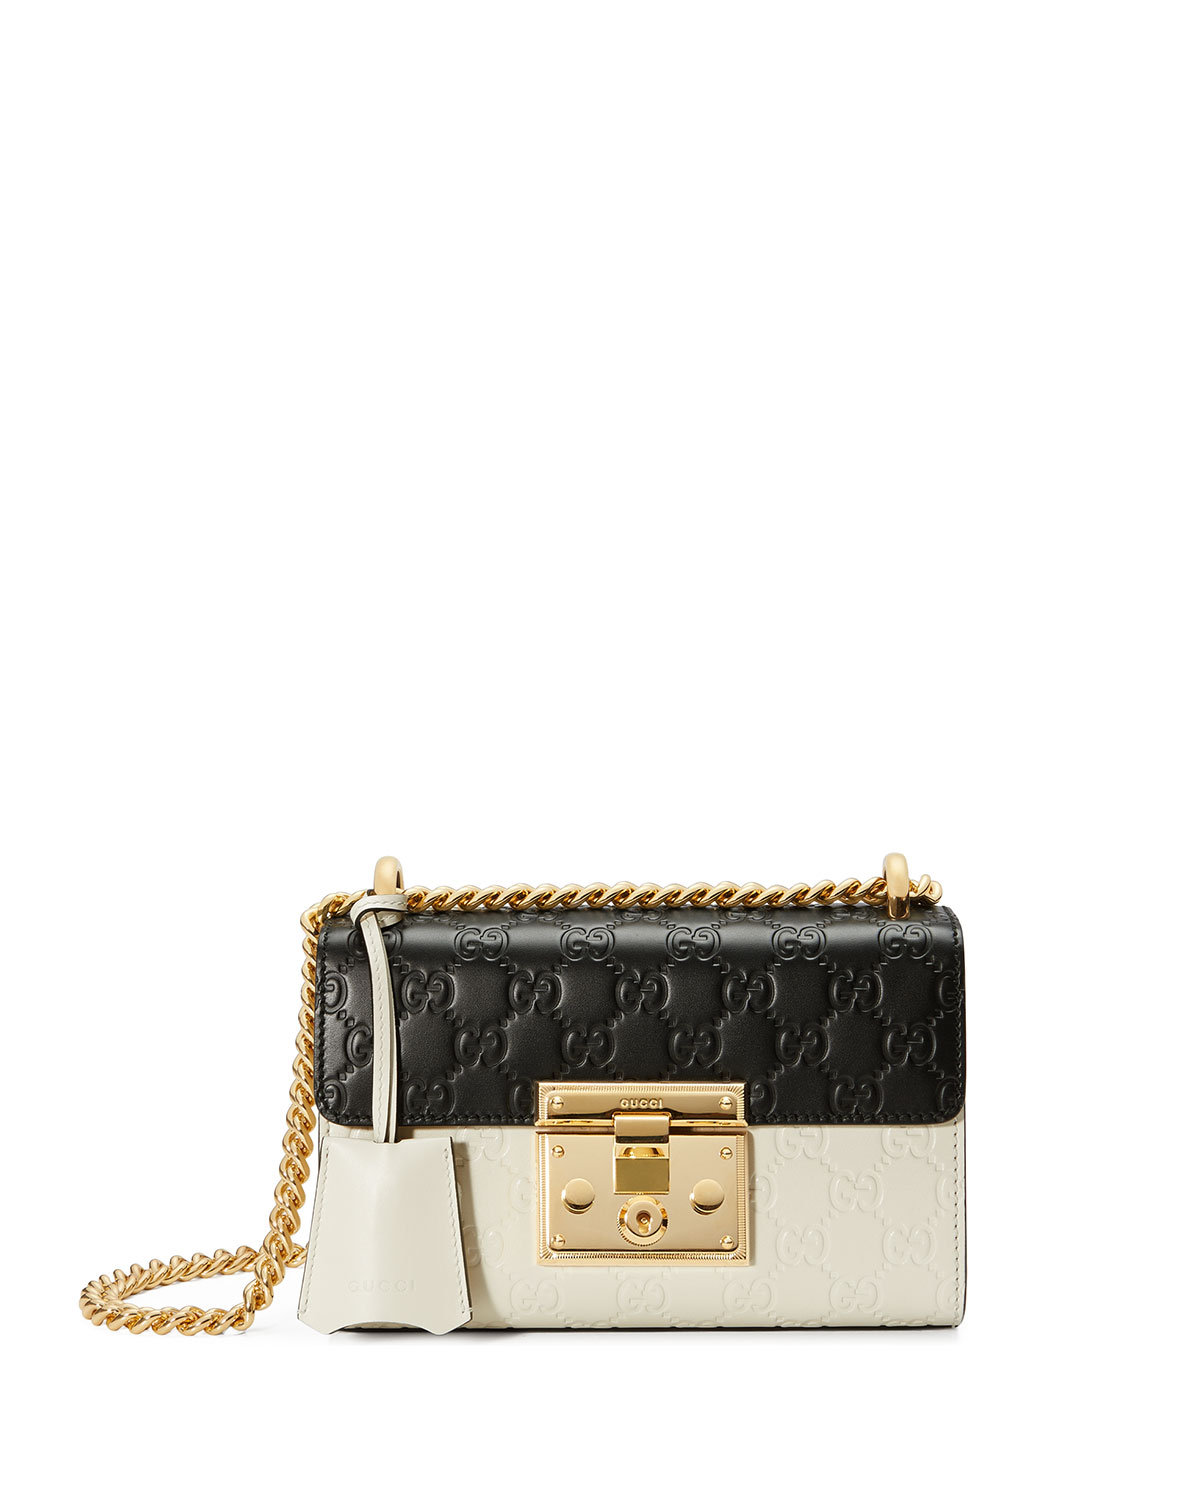 67fde4598 Gucci Padlock Mini Guccissima Colorblock Shoulder Bag, White/Black ...